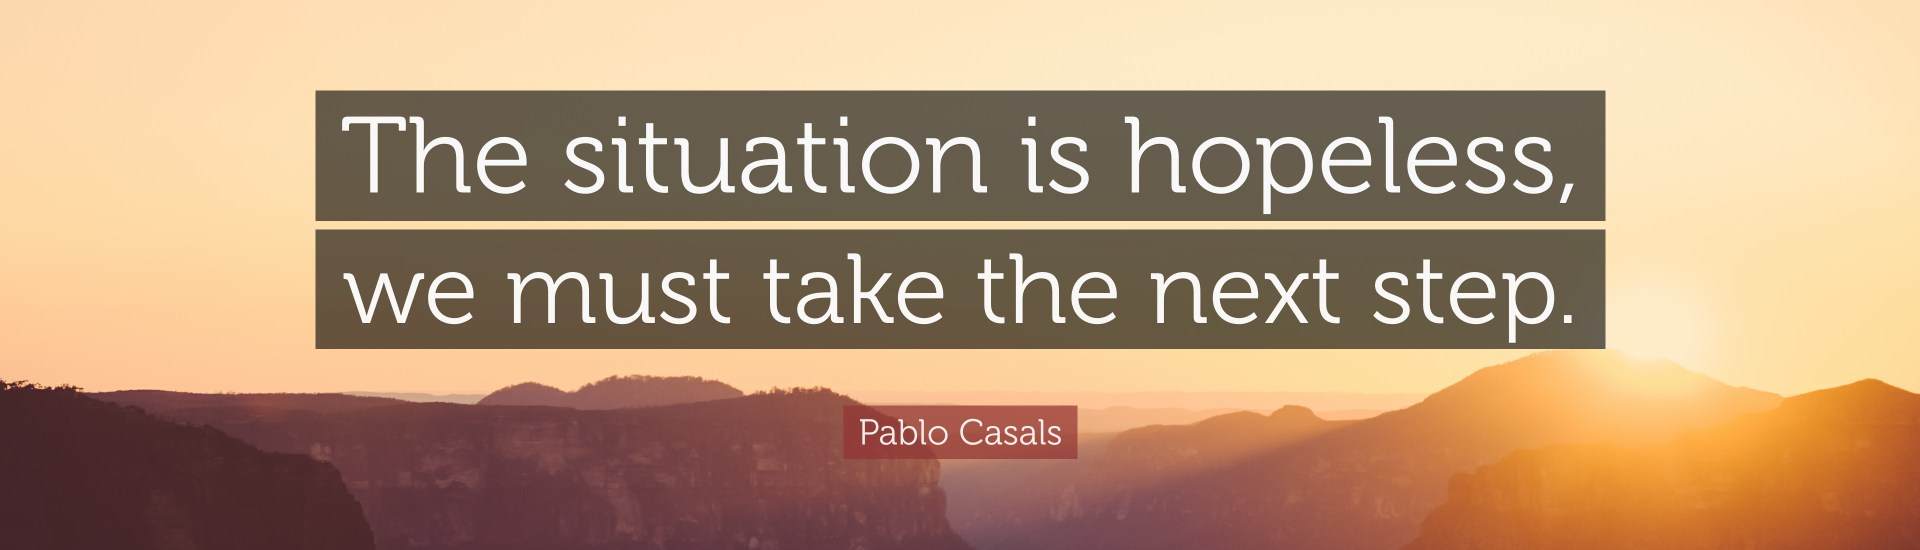 """The situation is hopeless, we must take the next step."" — Pablo Casals"